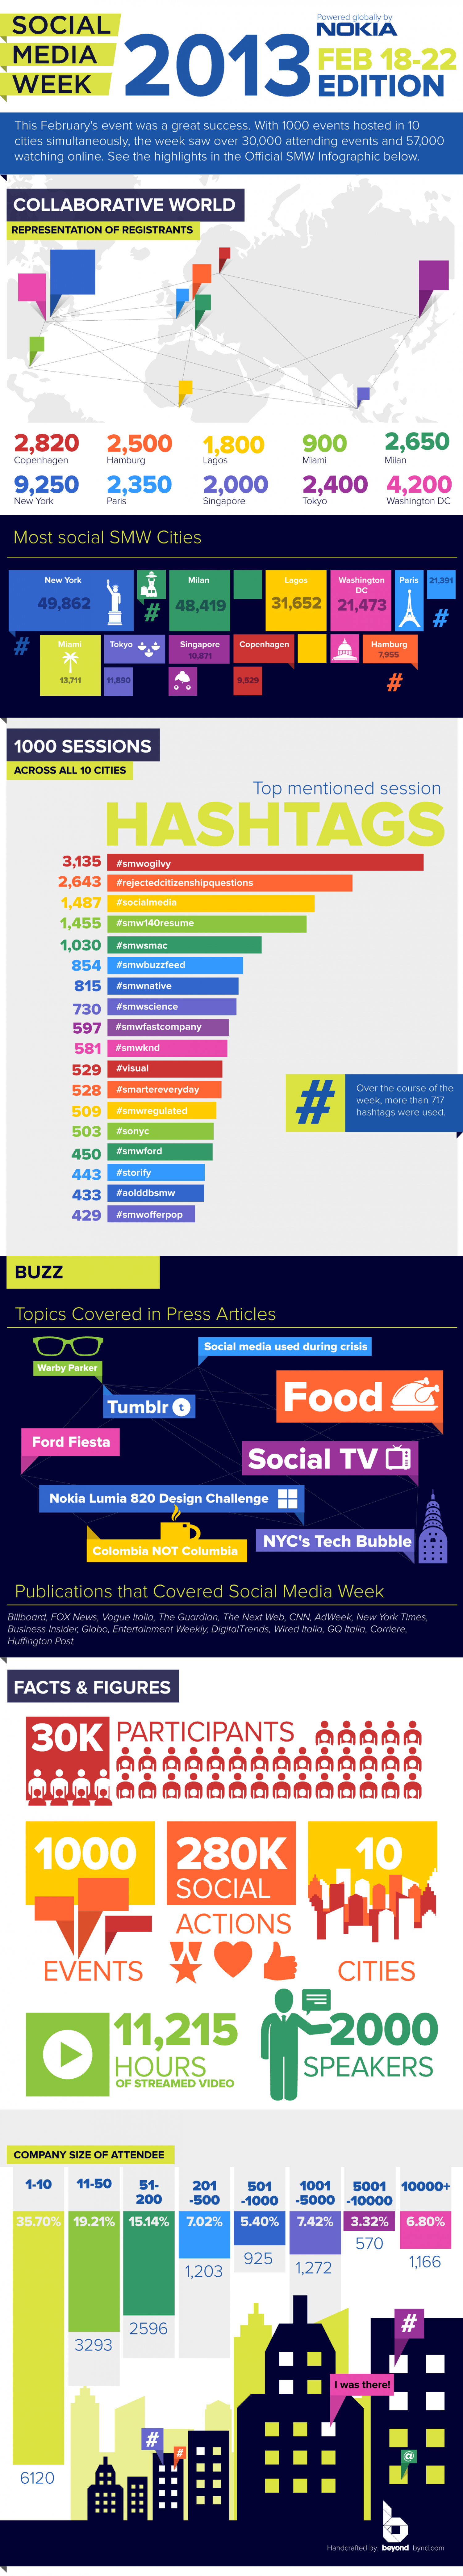 Social Media Week 2013 Infographic  Infographic